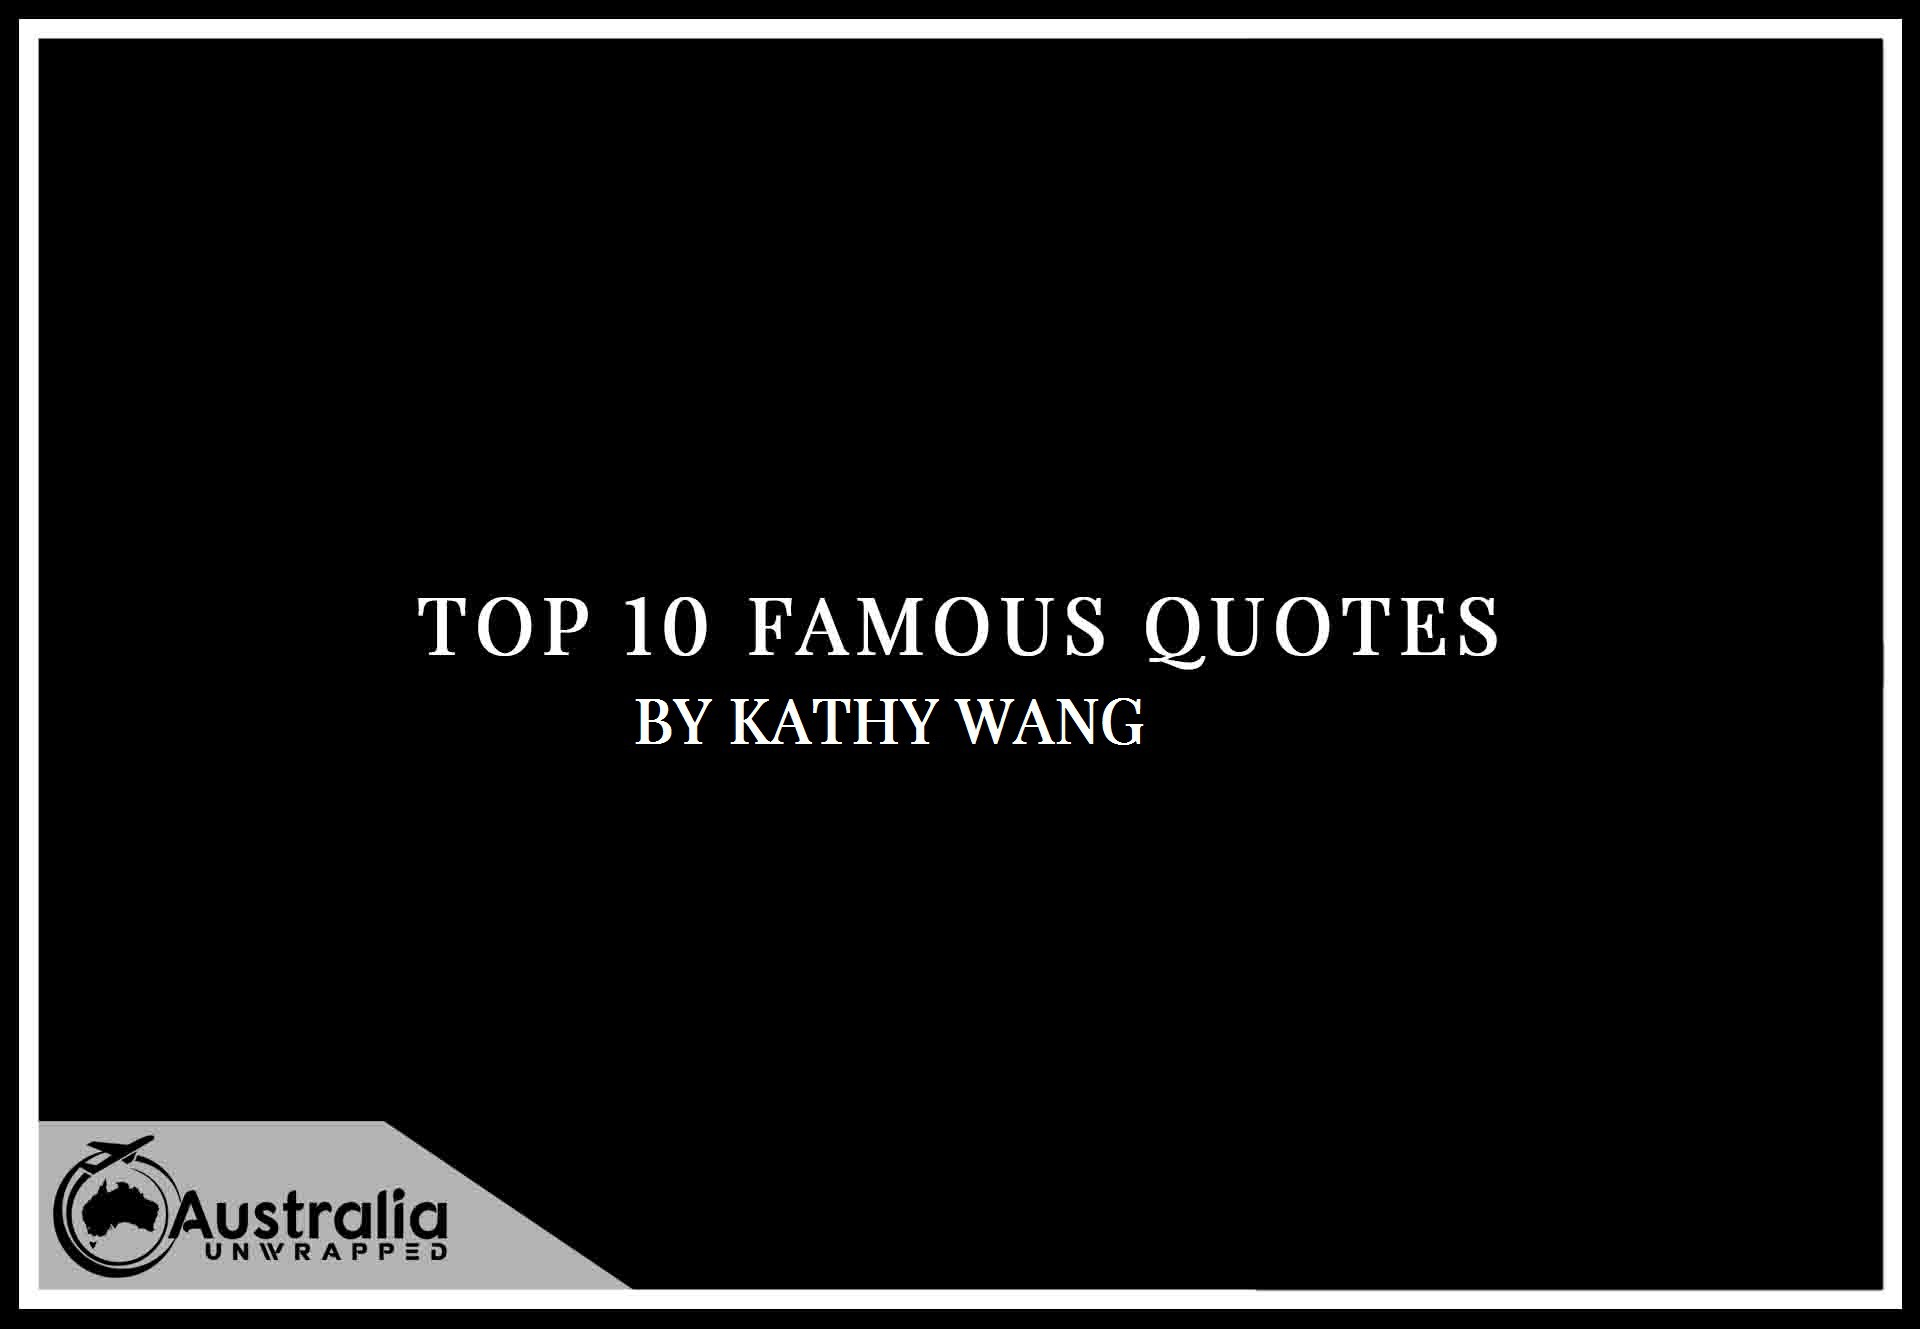 Kathy Wang's Top 10 Popular and Famous Quotes